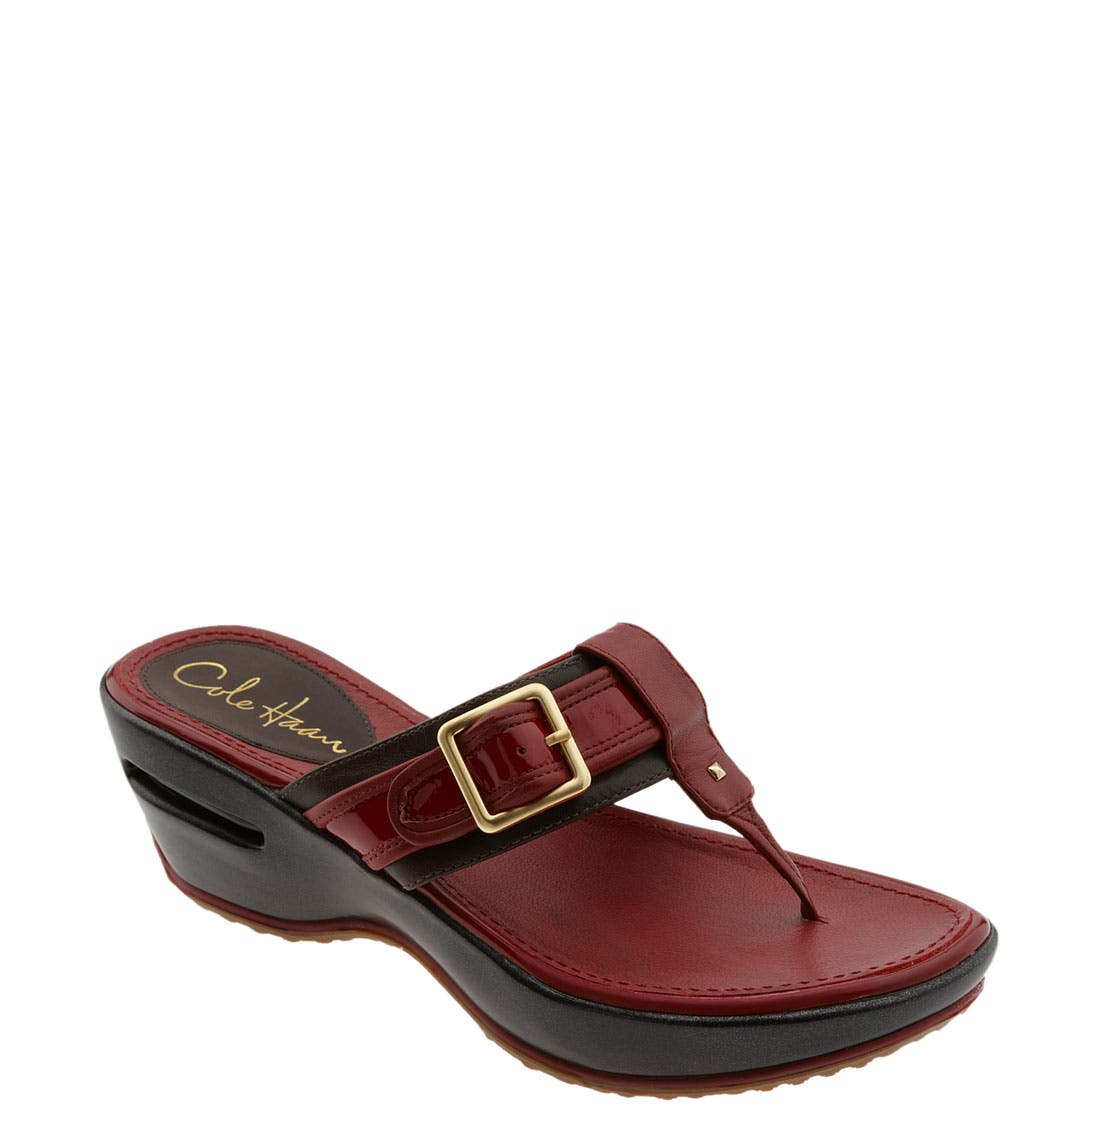 Main Image - Cole Haan 'Air Maddy' Sandal